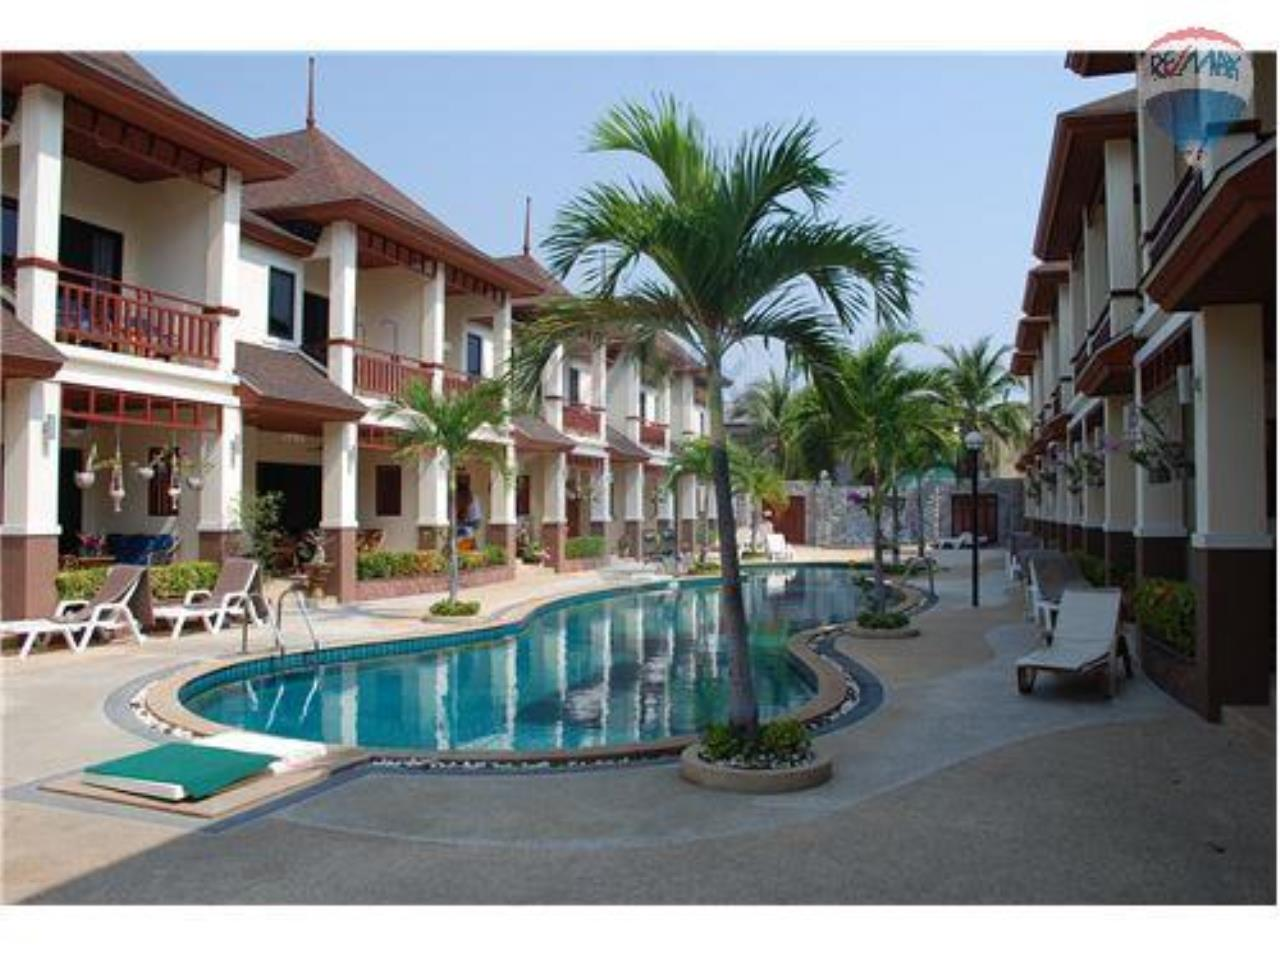 RE/MAX Beach Town Agency's Townhouse in Thai Paradise South, Cha-Am 2